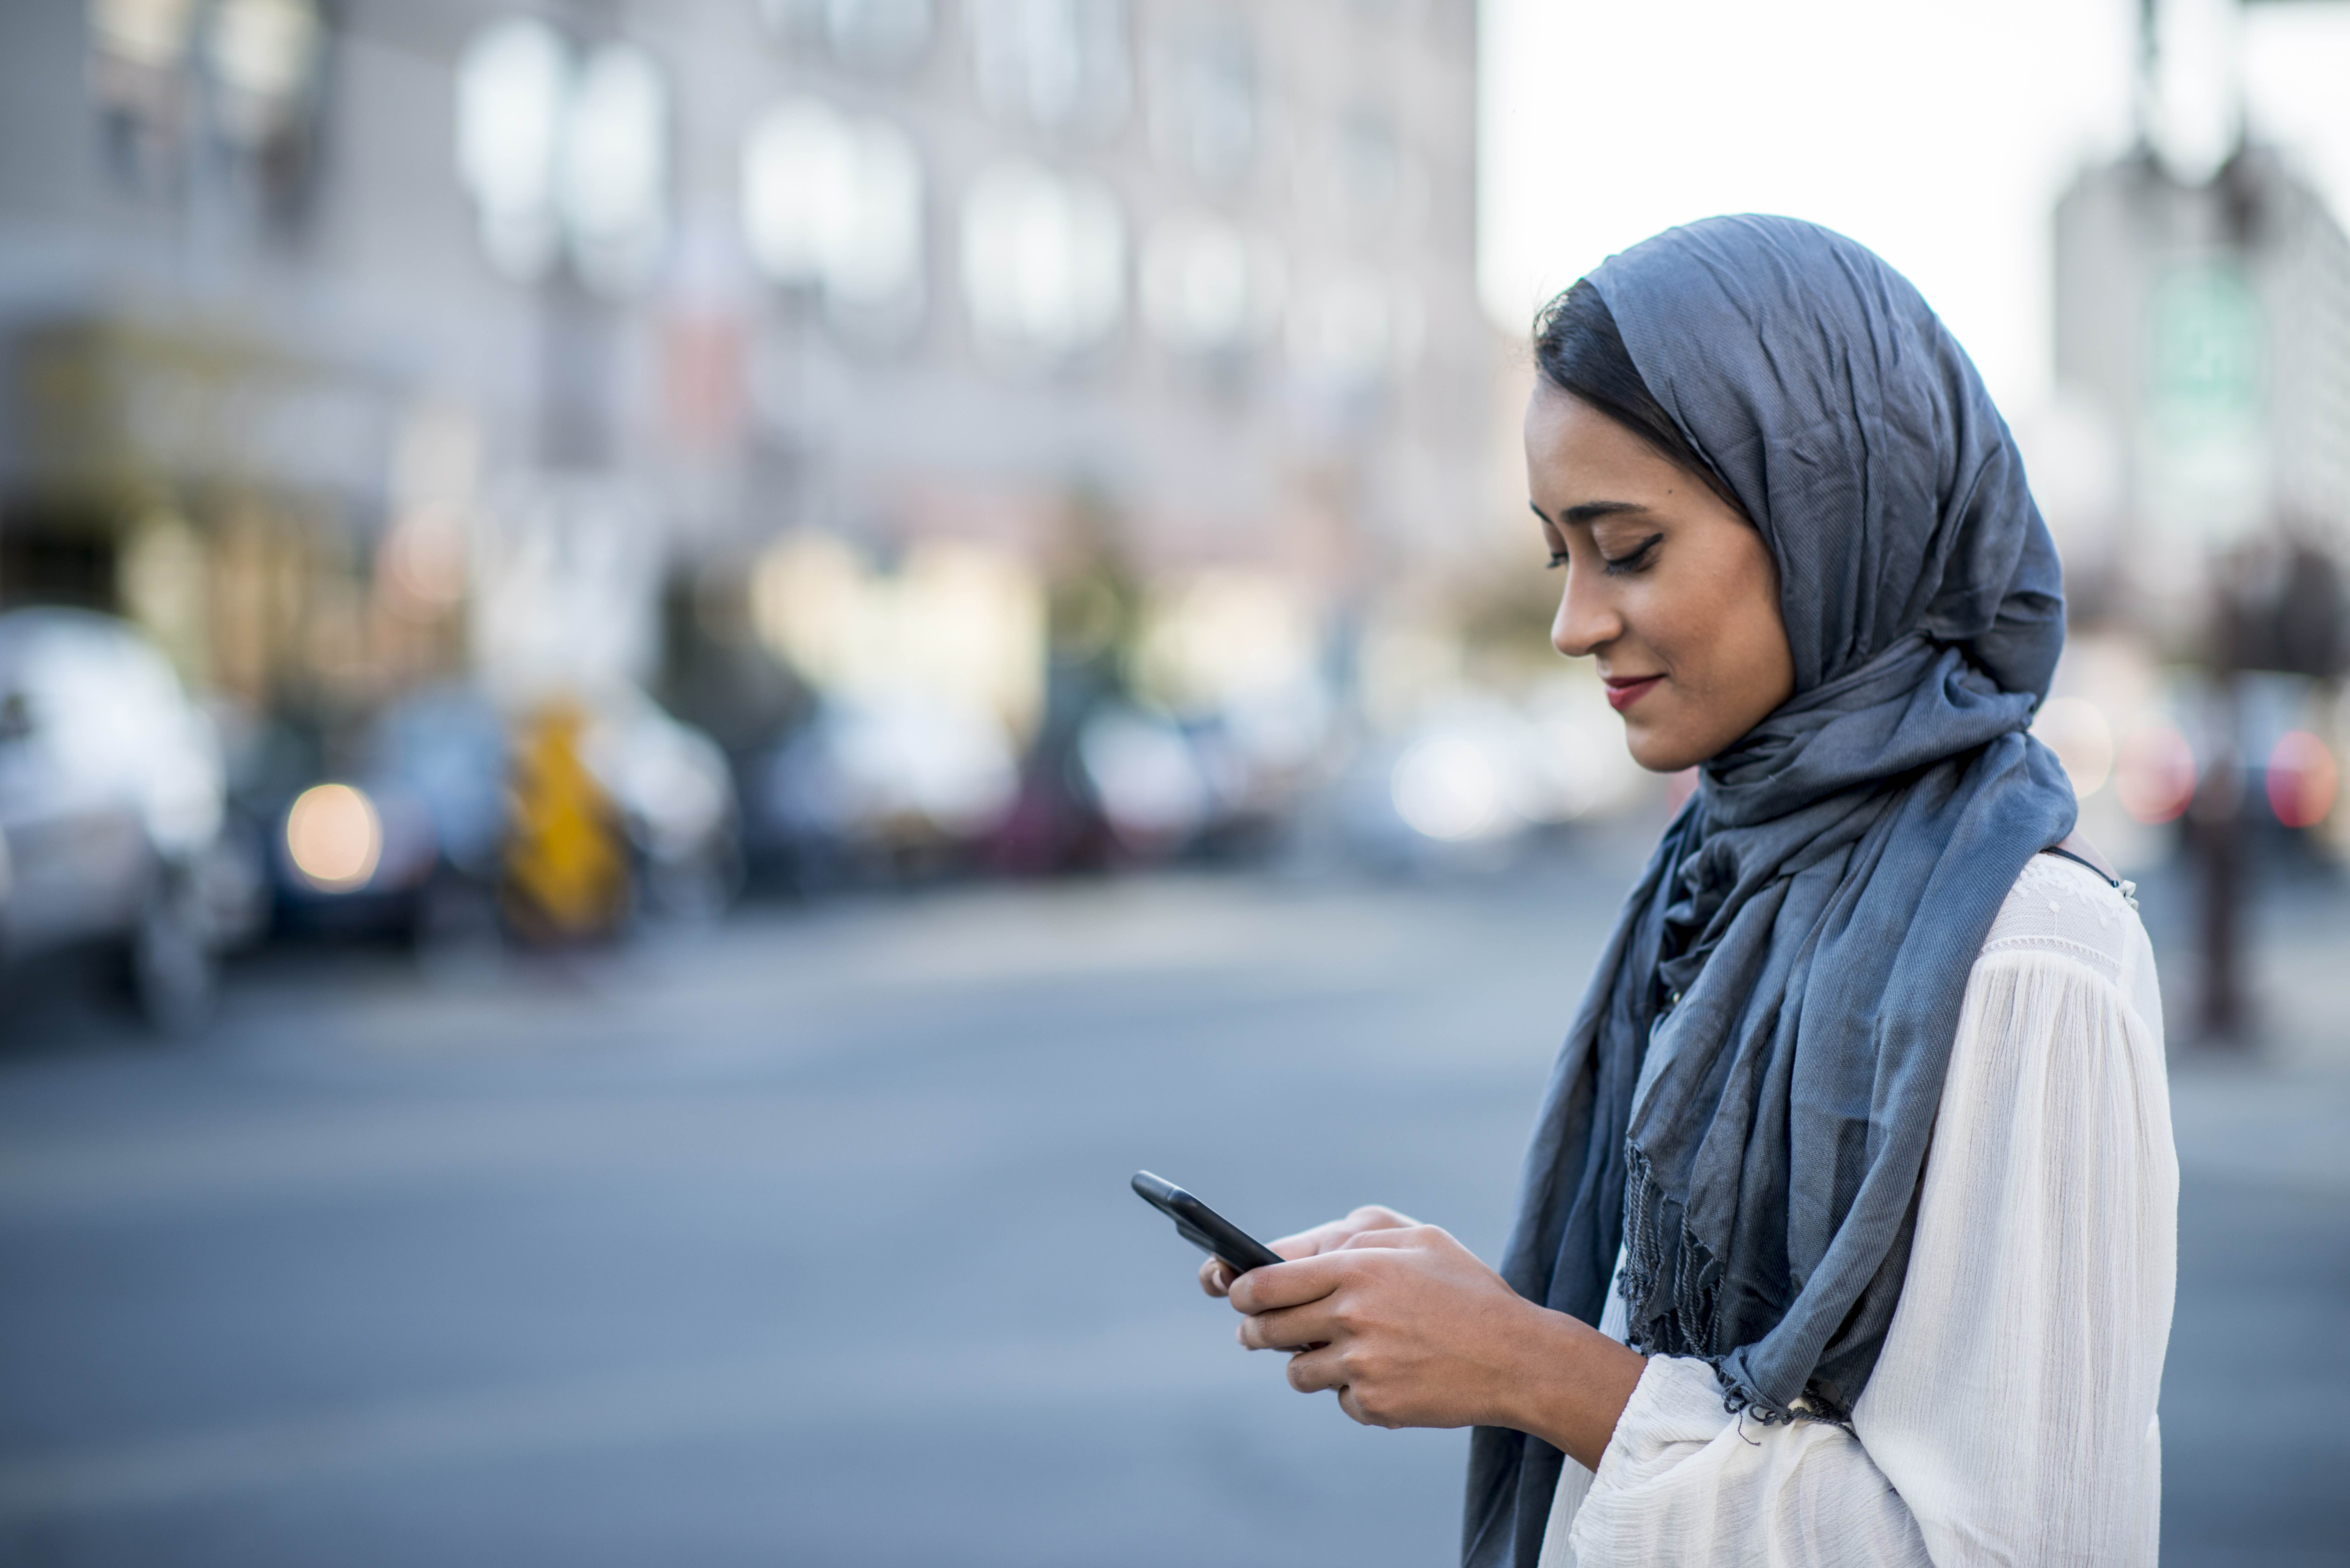 These 5 Pieces Offer a Glimpse Into the Latino Muslim Experience